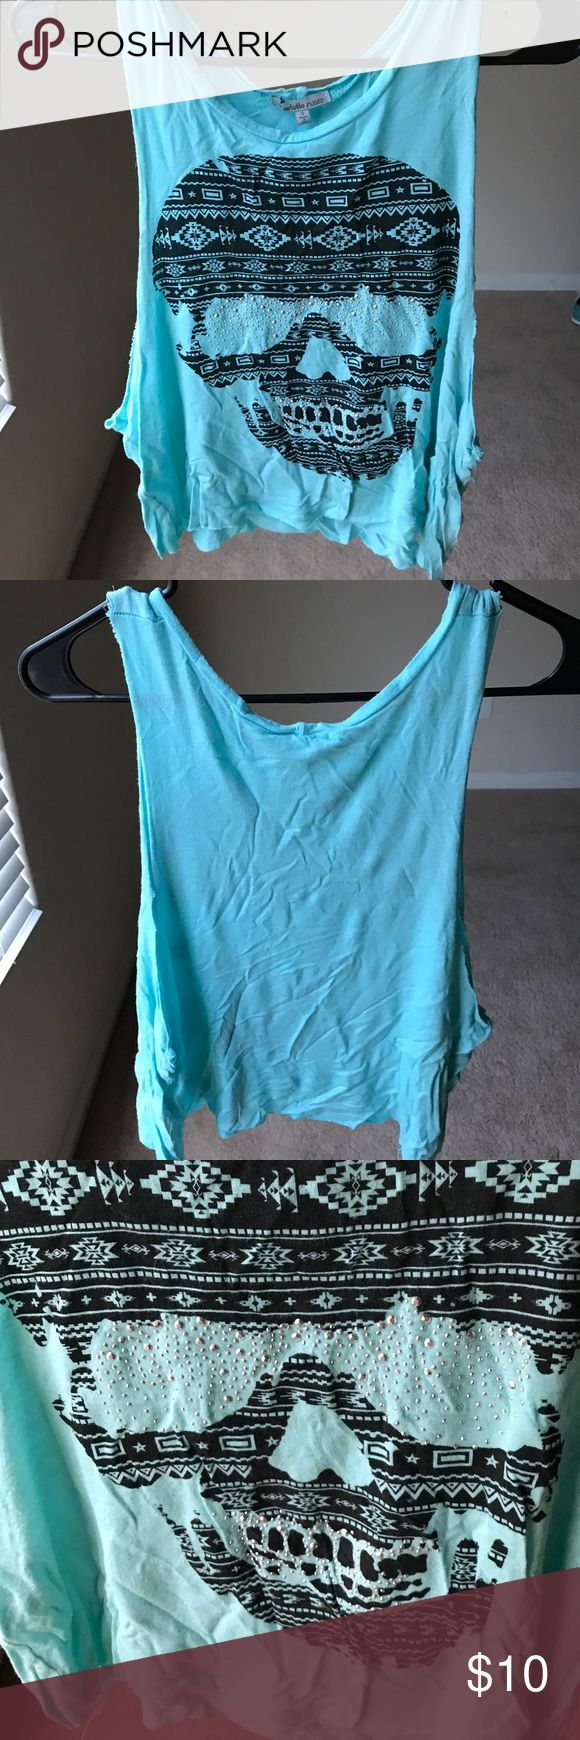 Blue Tank Top This top has sparkle and side cutouts to show off your super cute bralette! Looks and feels great! Charlotte Russe Tops Tank Tops